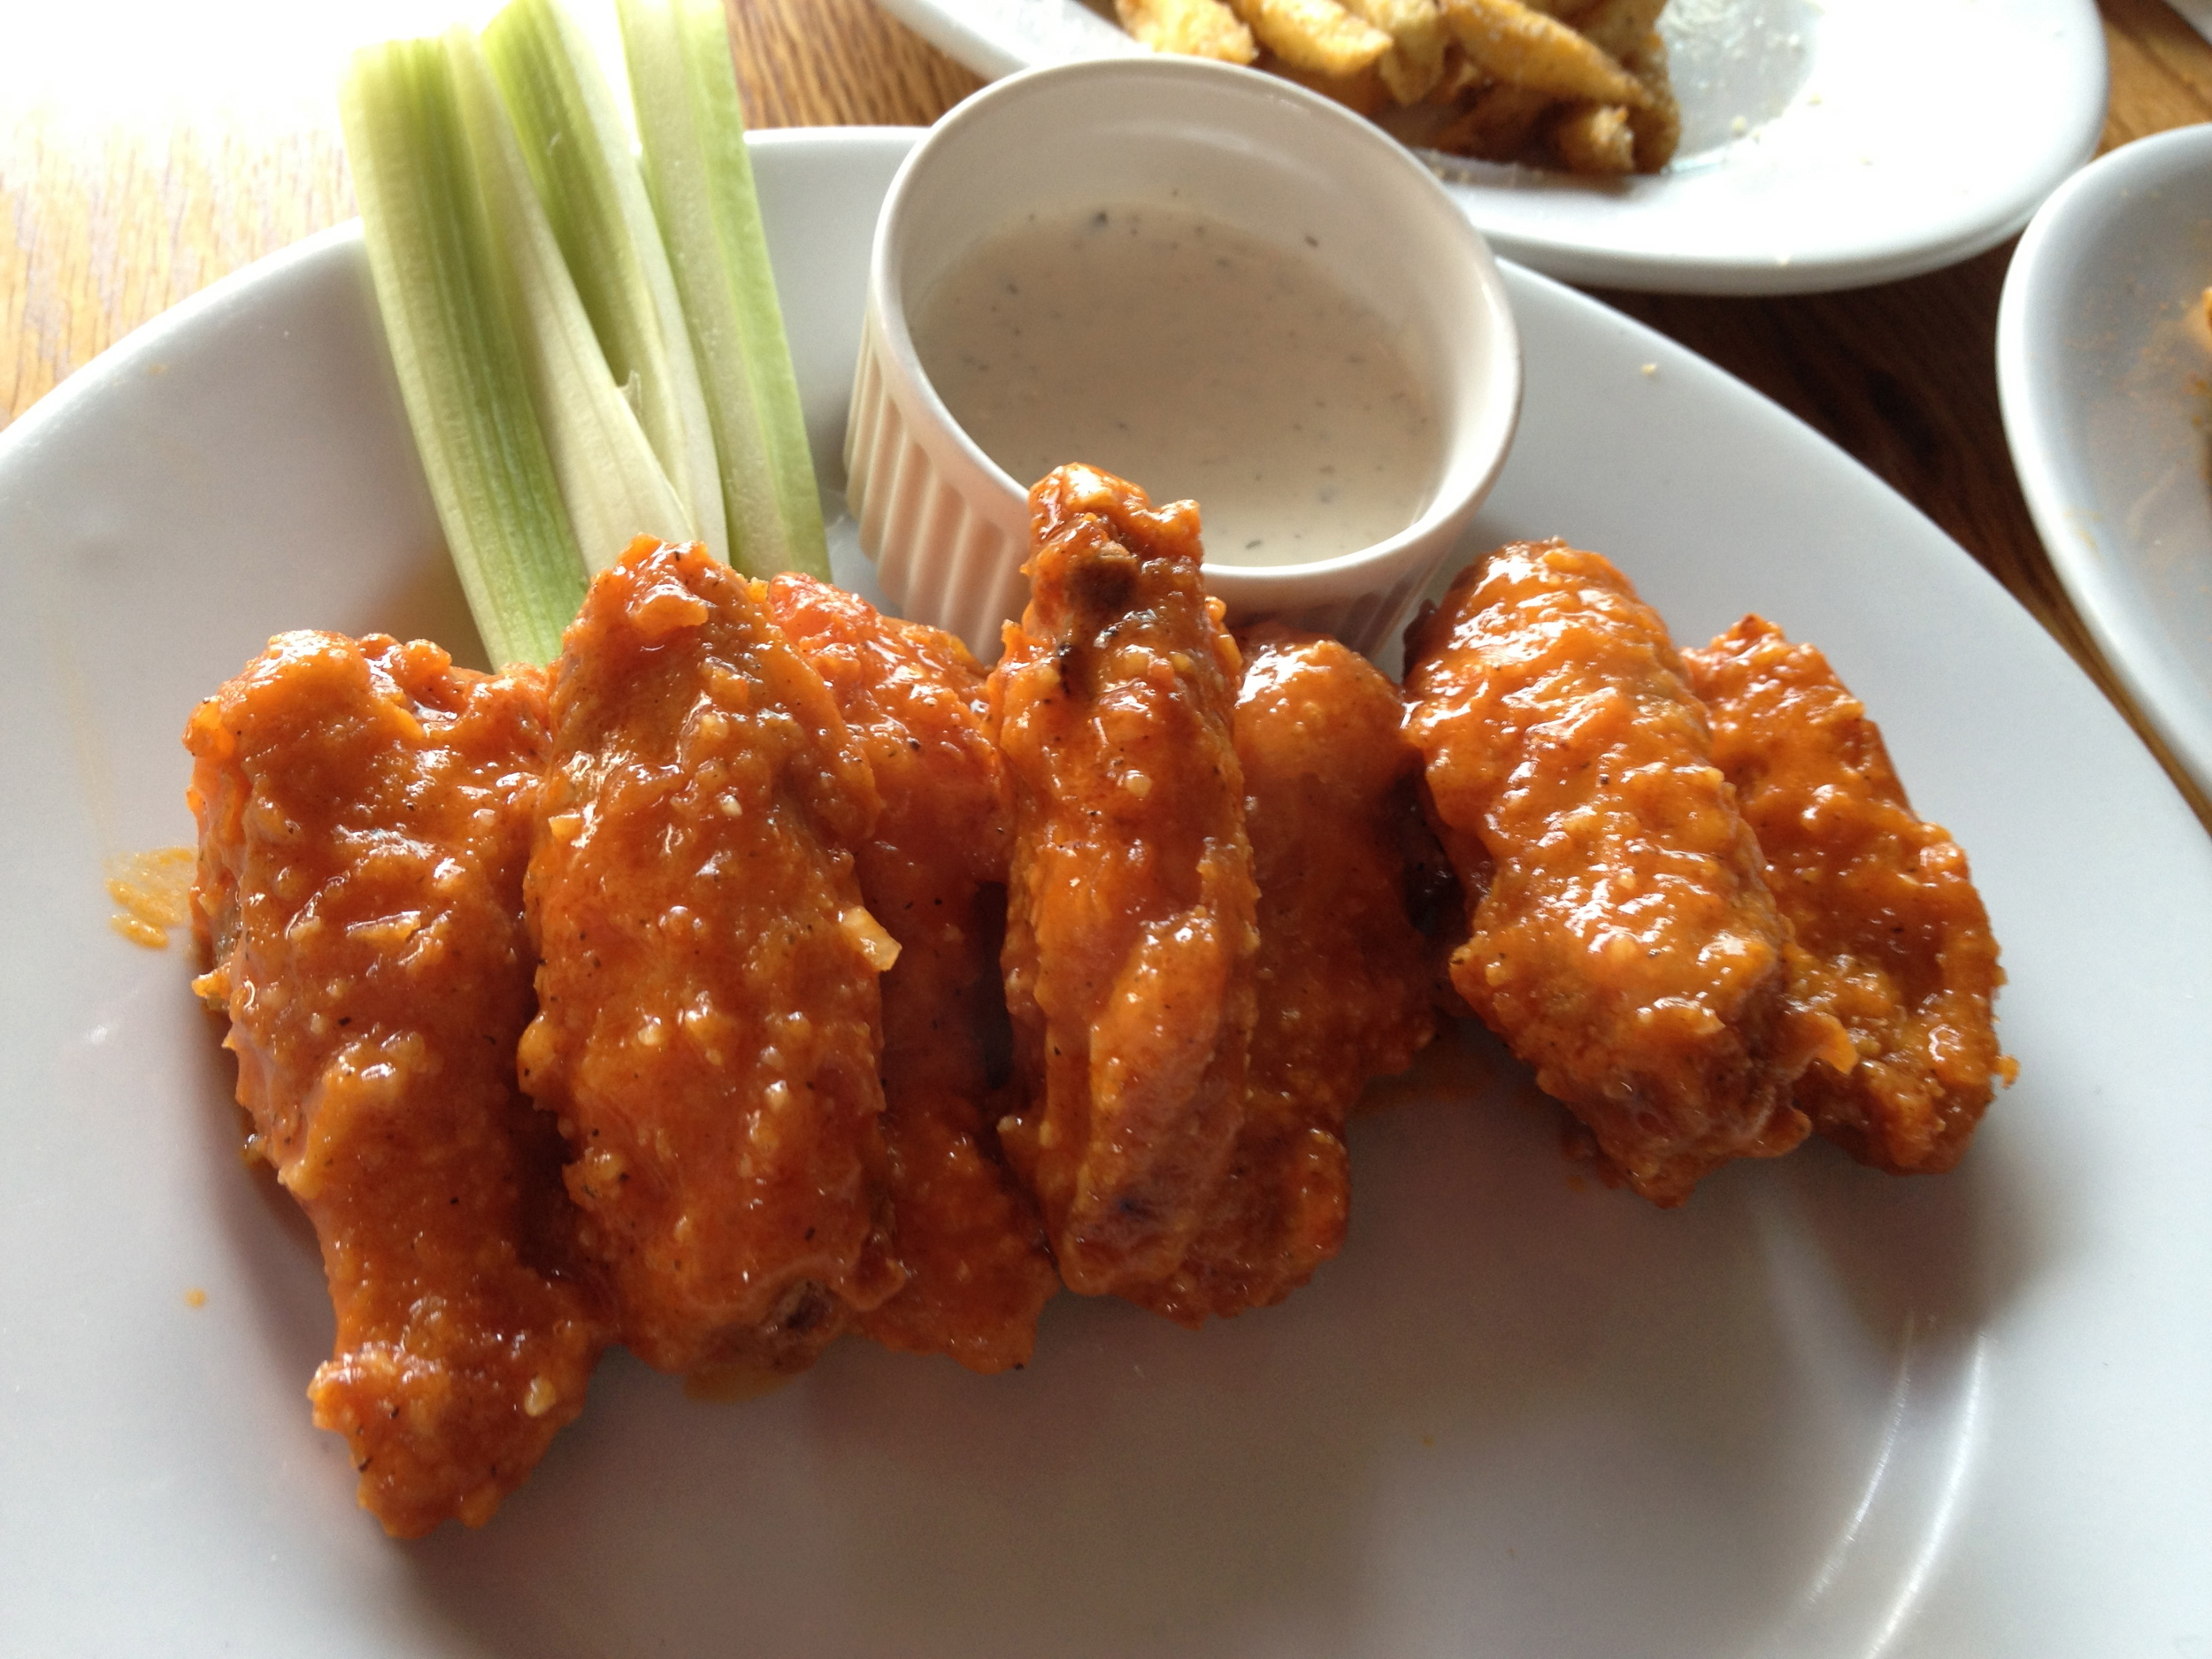 "Buffalo Hot Wings: ""BONY's homemade hot wings, served with ranch sauce."" 9000won  I was a bit disappointed with these wings. They were TINY! I hear that wing sizes in Korea depend on the shipment, but there were too small, and the sauce was too vinegary and spicy without for a buffalo wing. I love buffalo wings but I will stick to the fries and pizza at this place.   I did a wing comparison blog in search of the best wings in Seoul. Check out my edition of  Best Chicken Wings in Seoul HERE!"